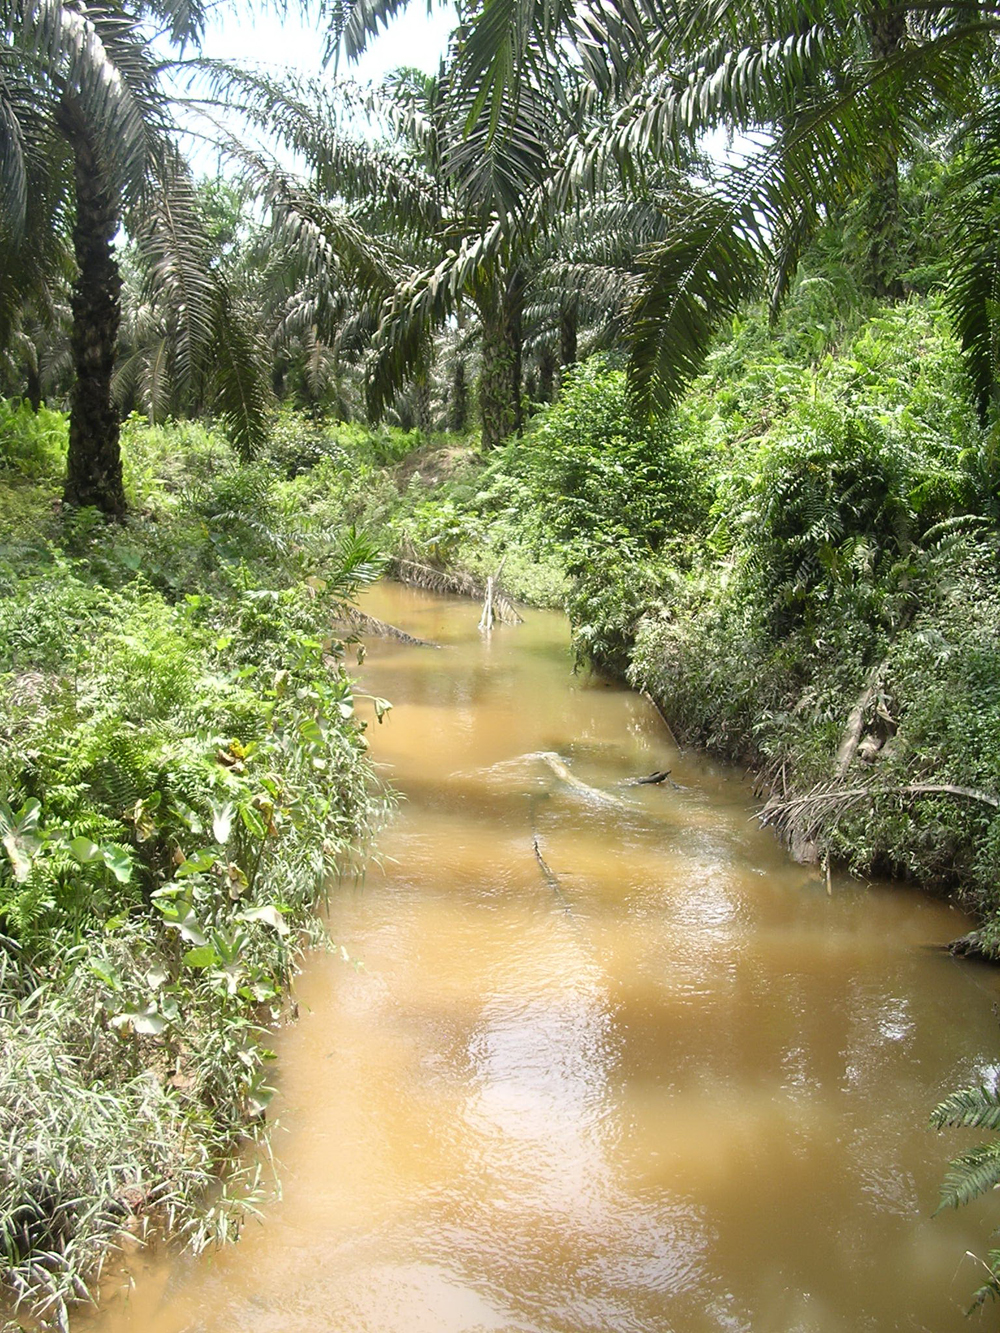 A stream running through a ten-year old oil palm plantation in West Kalimantan, Indonesian Borneo (Credit: Neli Lisnawat)